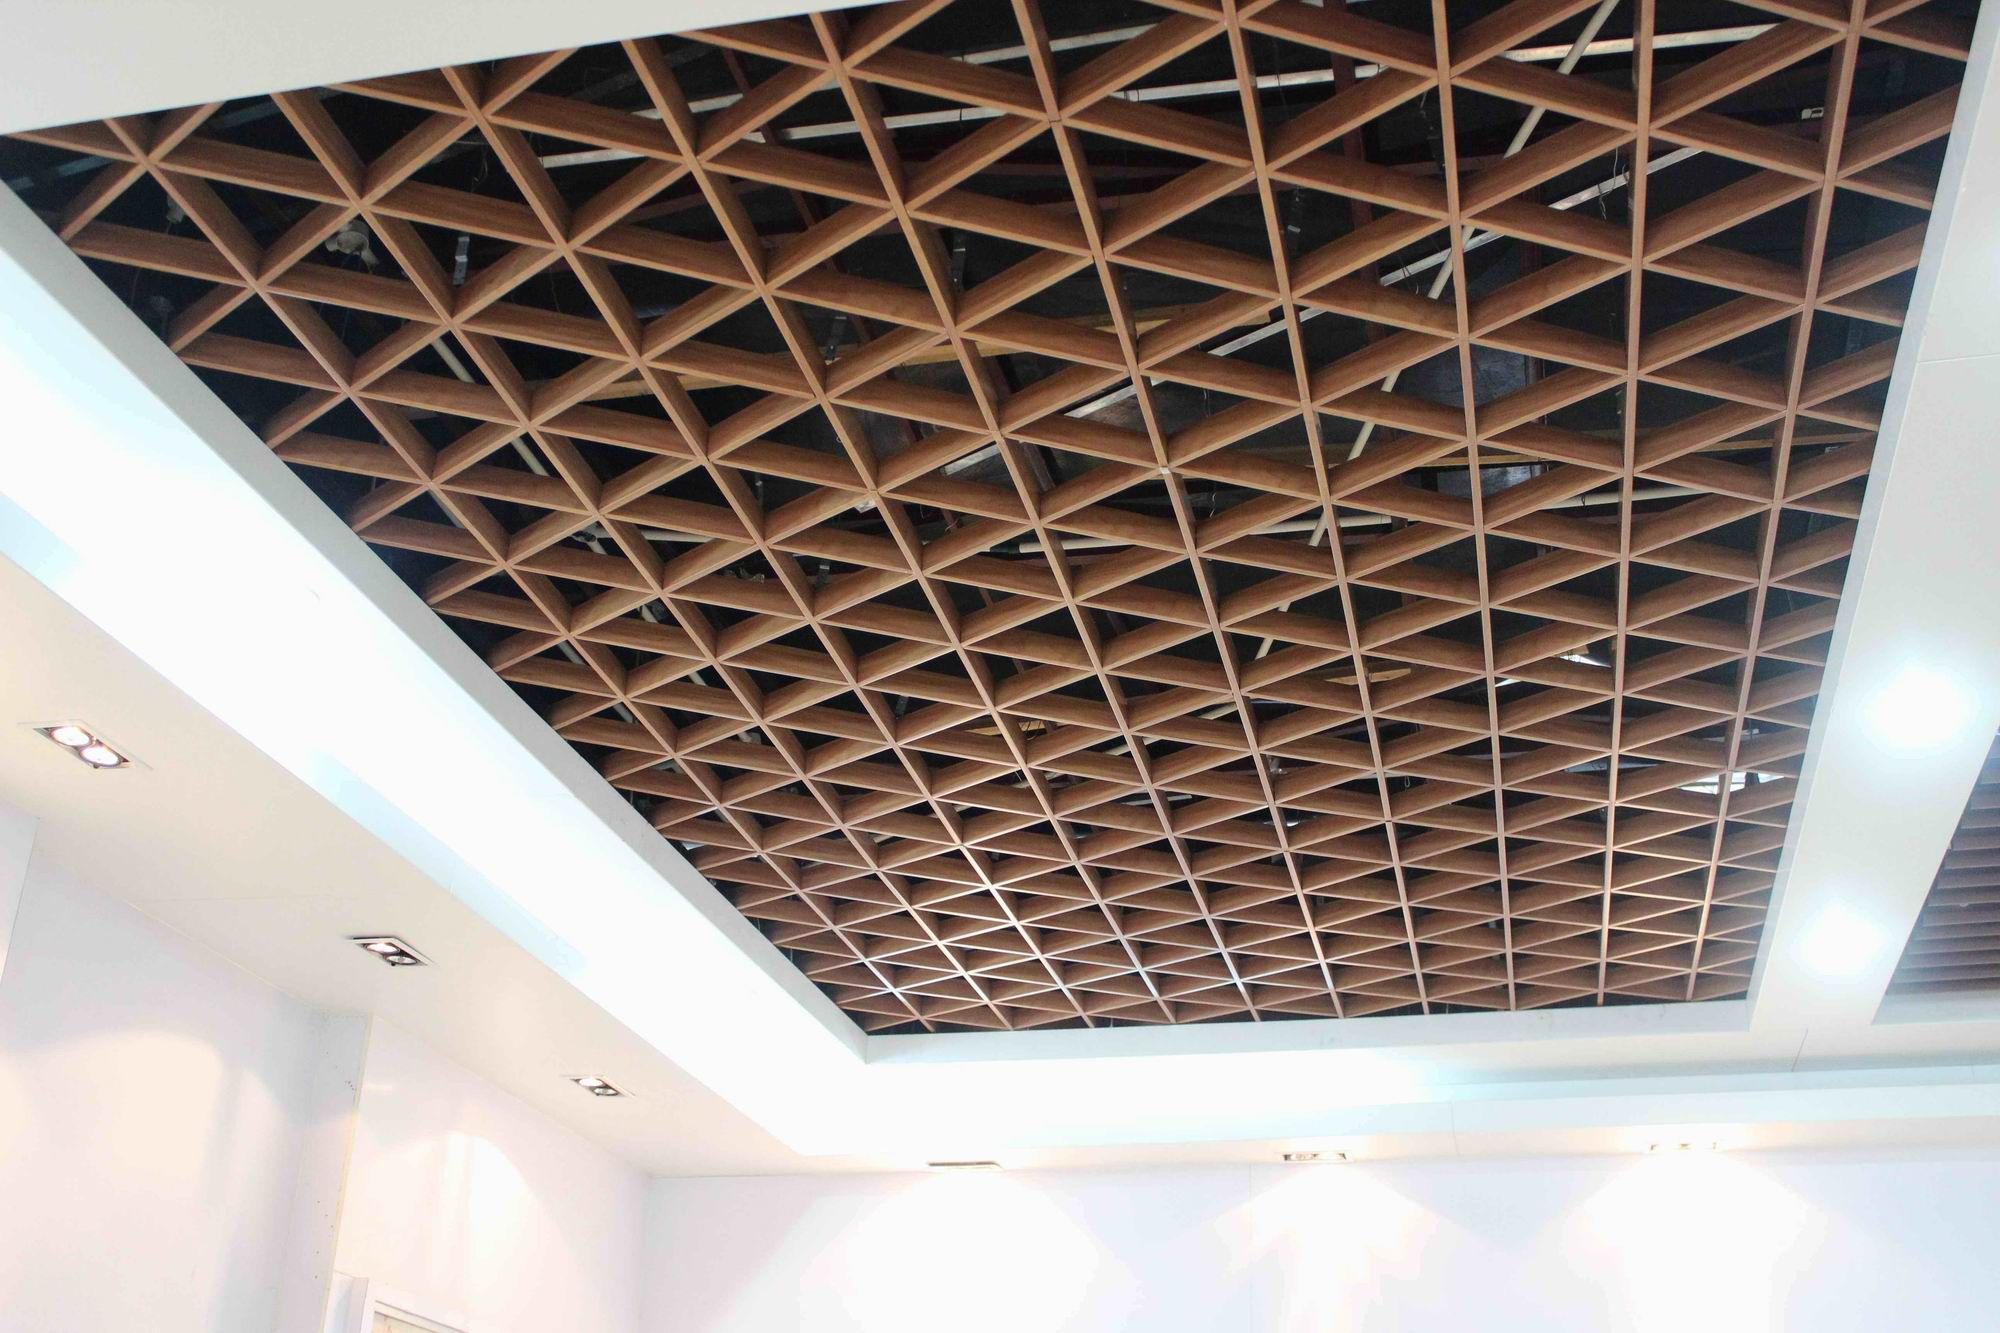 Hot Item Aluminum Triangle Grid Ceiling Ceiling Tiles False Ceiling Living Room Ceiling Design